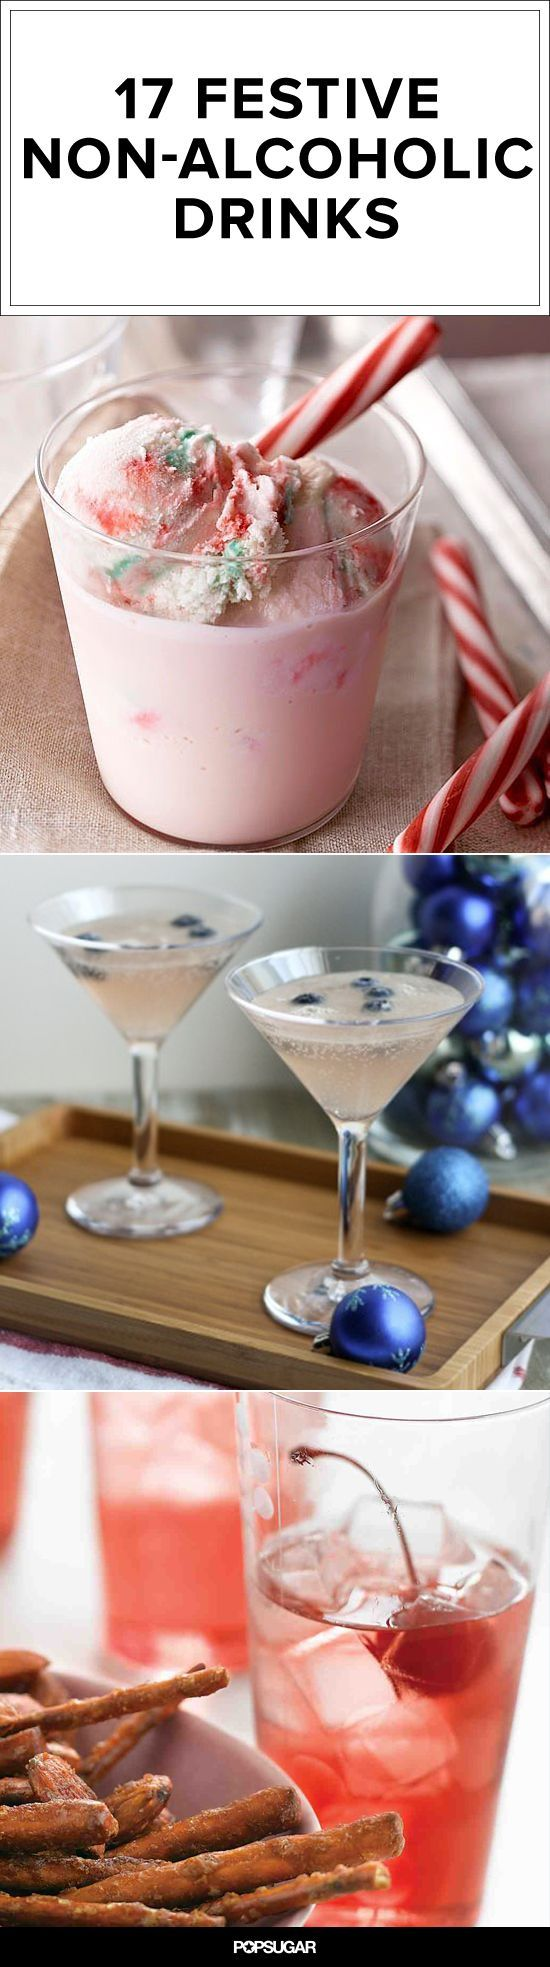 17 Festive, Non-Alcoholic Drinks Everyone The Whole Family Can Enjoy - we highly recommend this list, please click to check it out #mocktails...x